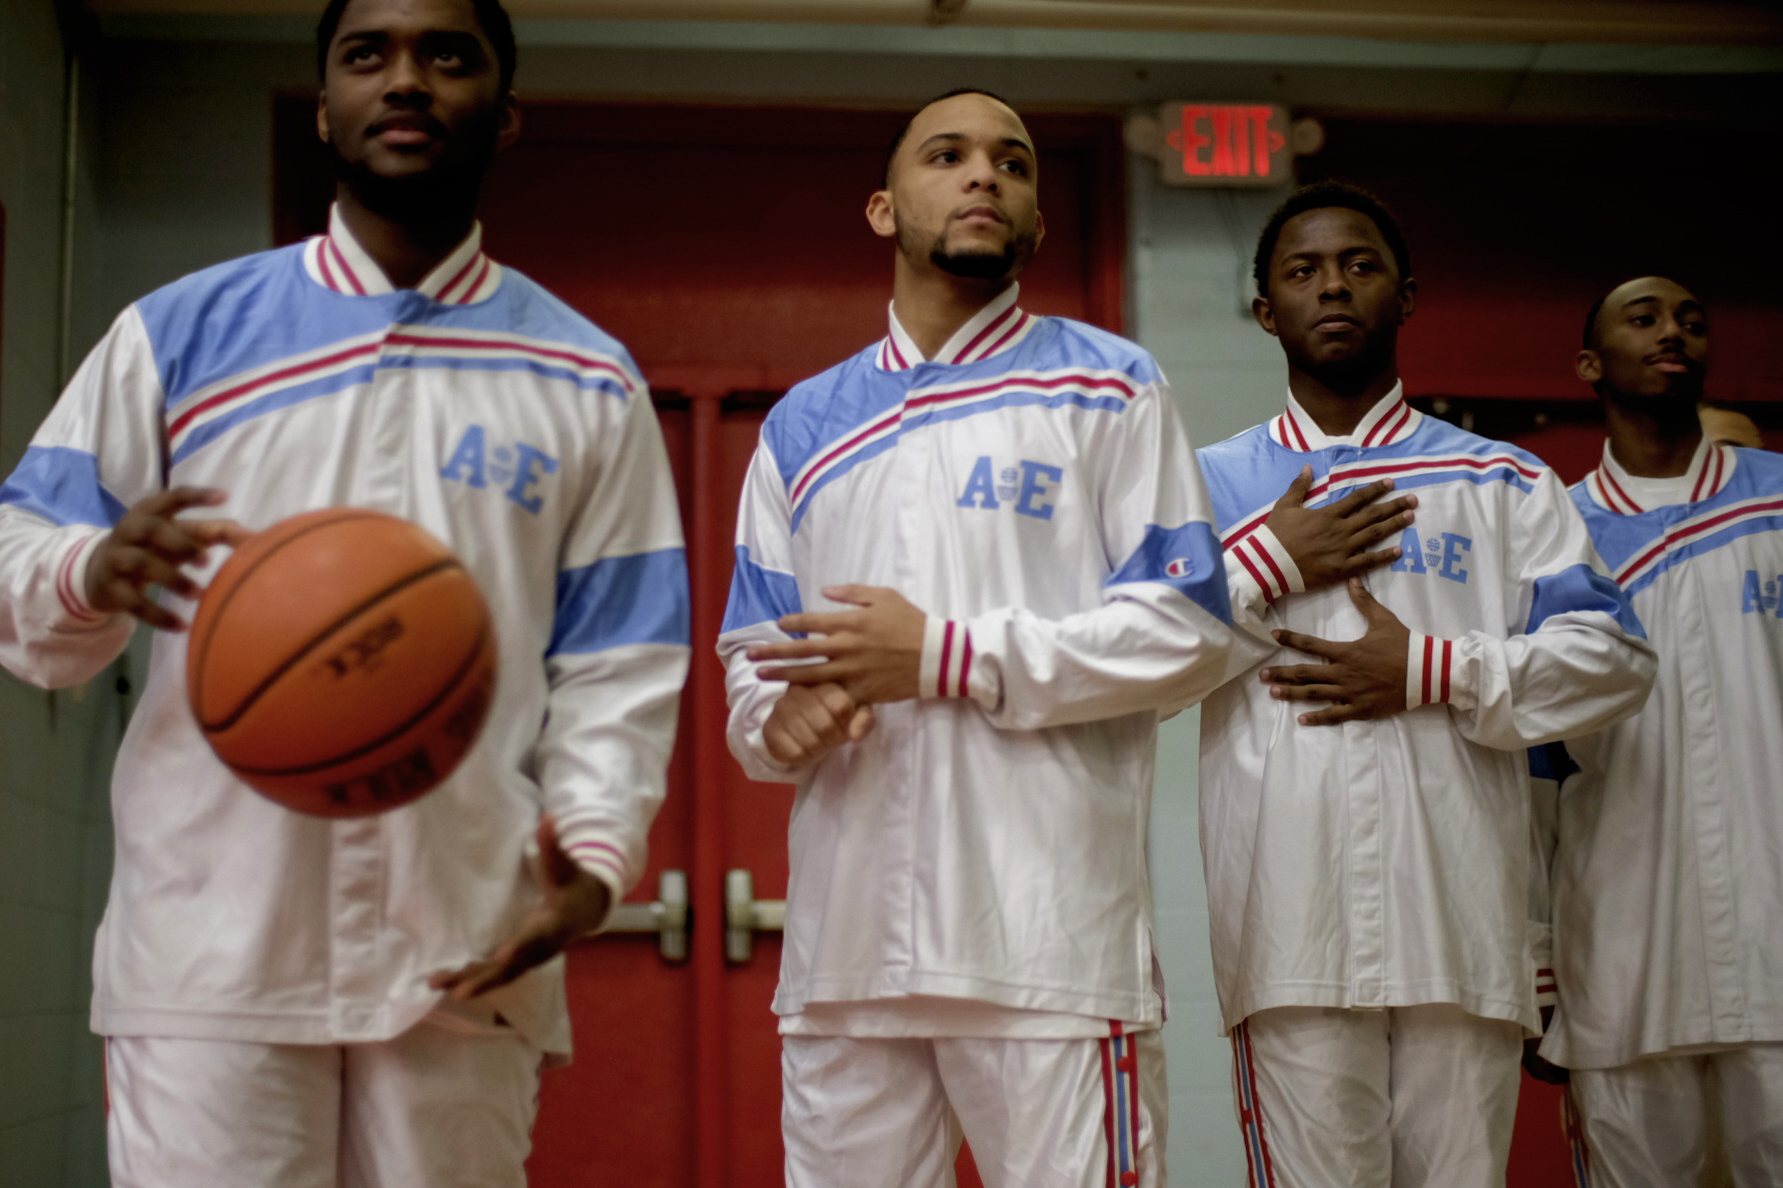 Austin-East High School, a historically black high school, basketball team. Knoxville, Tenn.